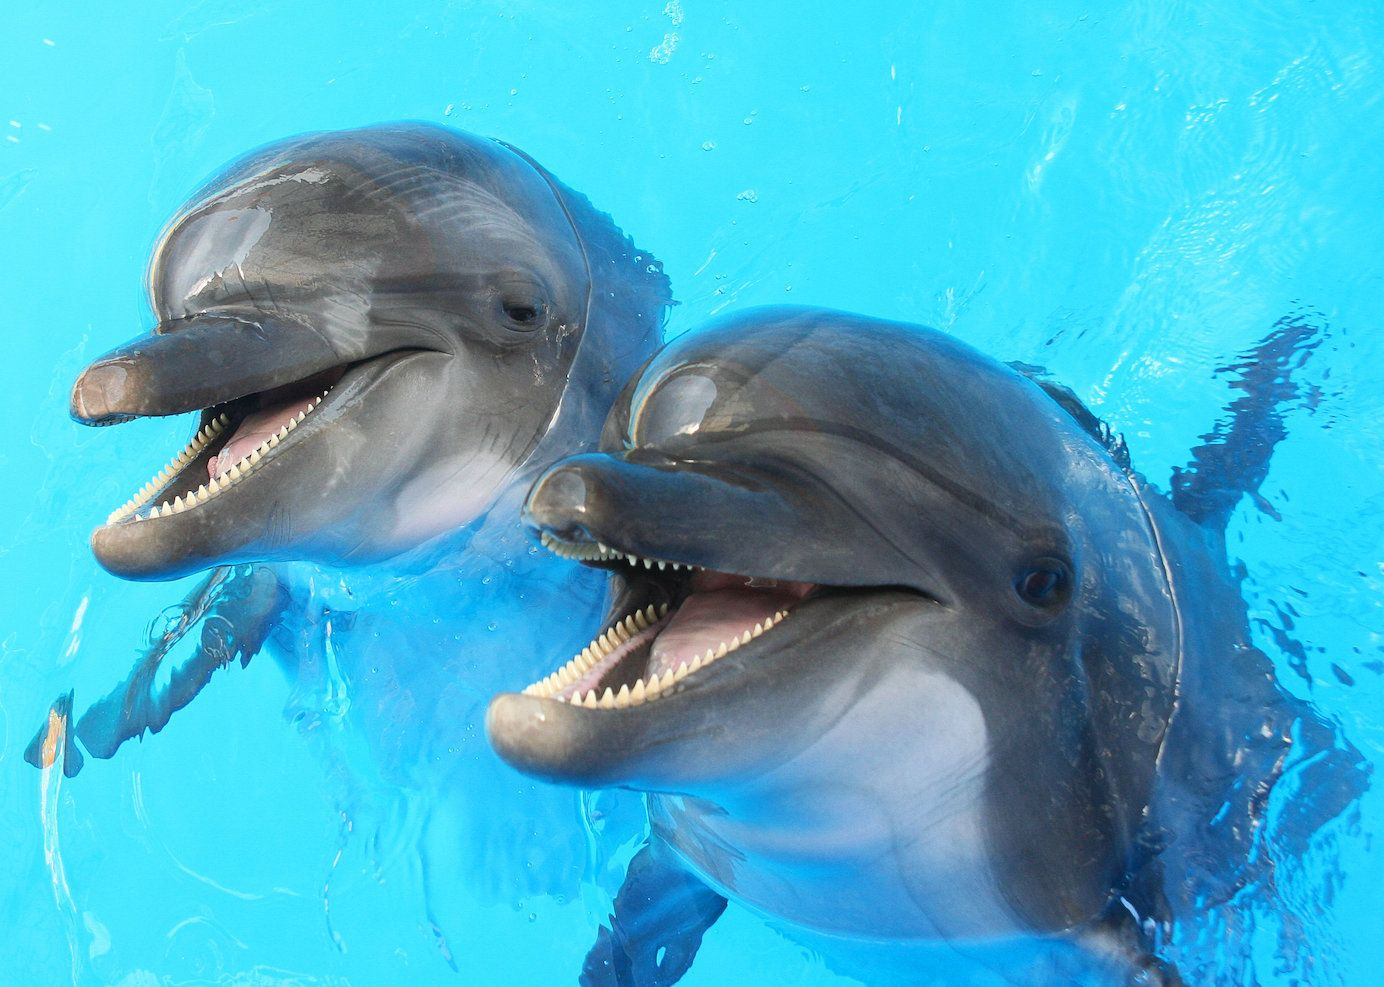 Two dolphins in a pool